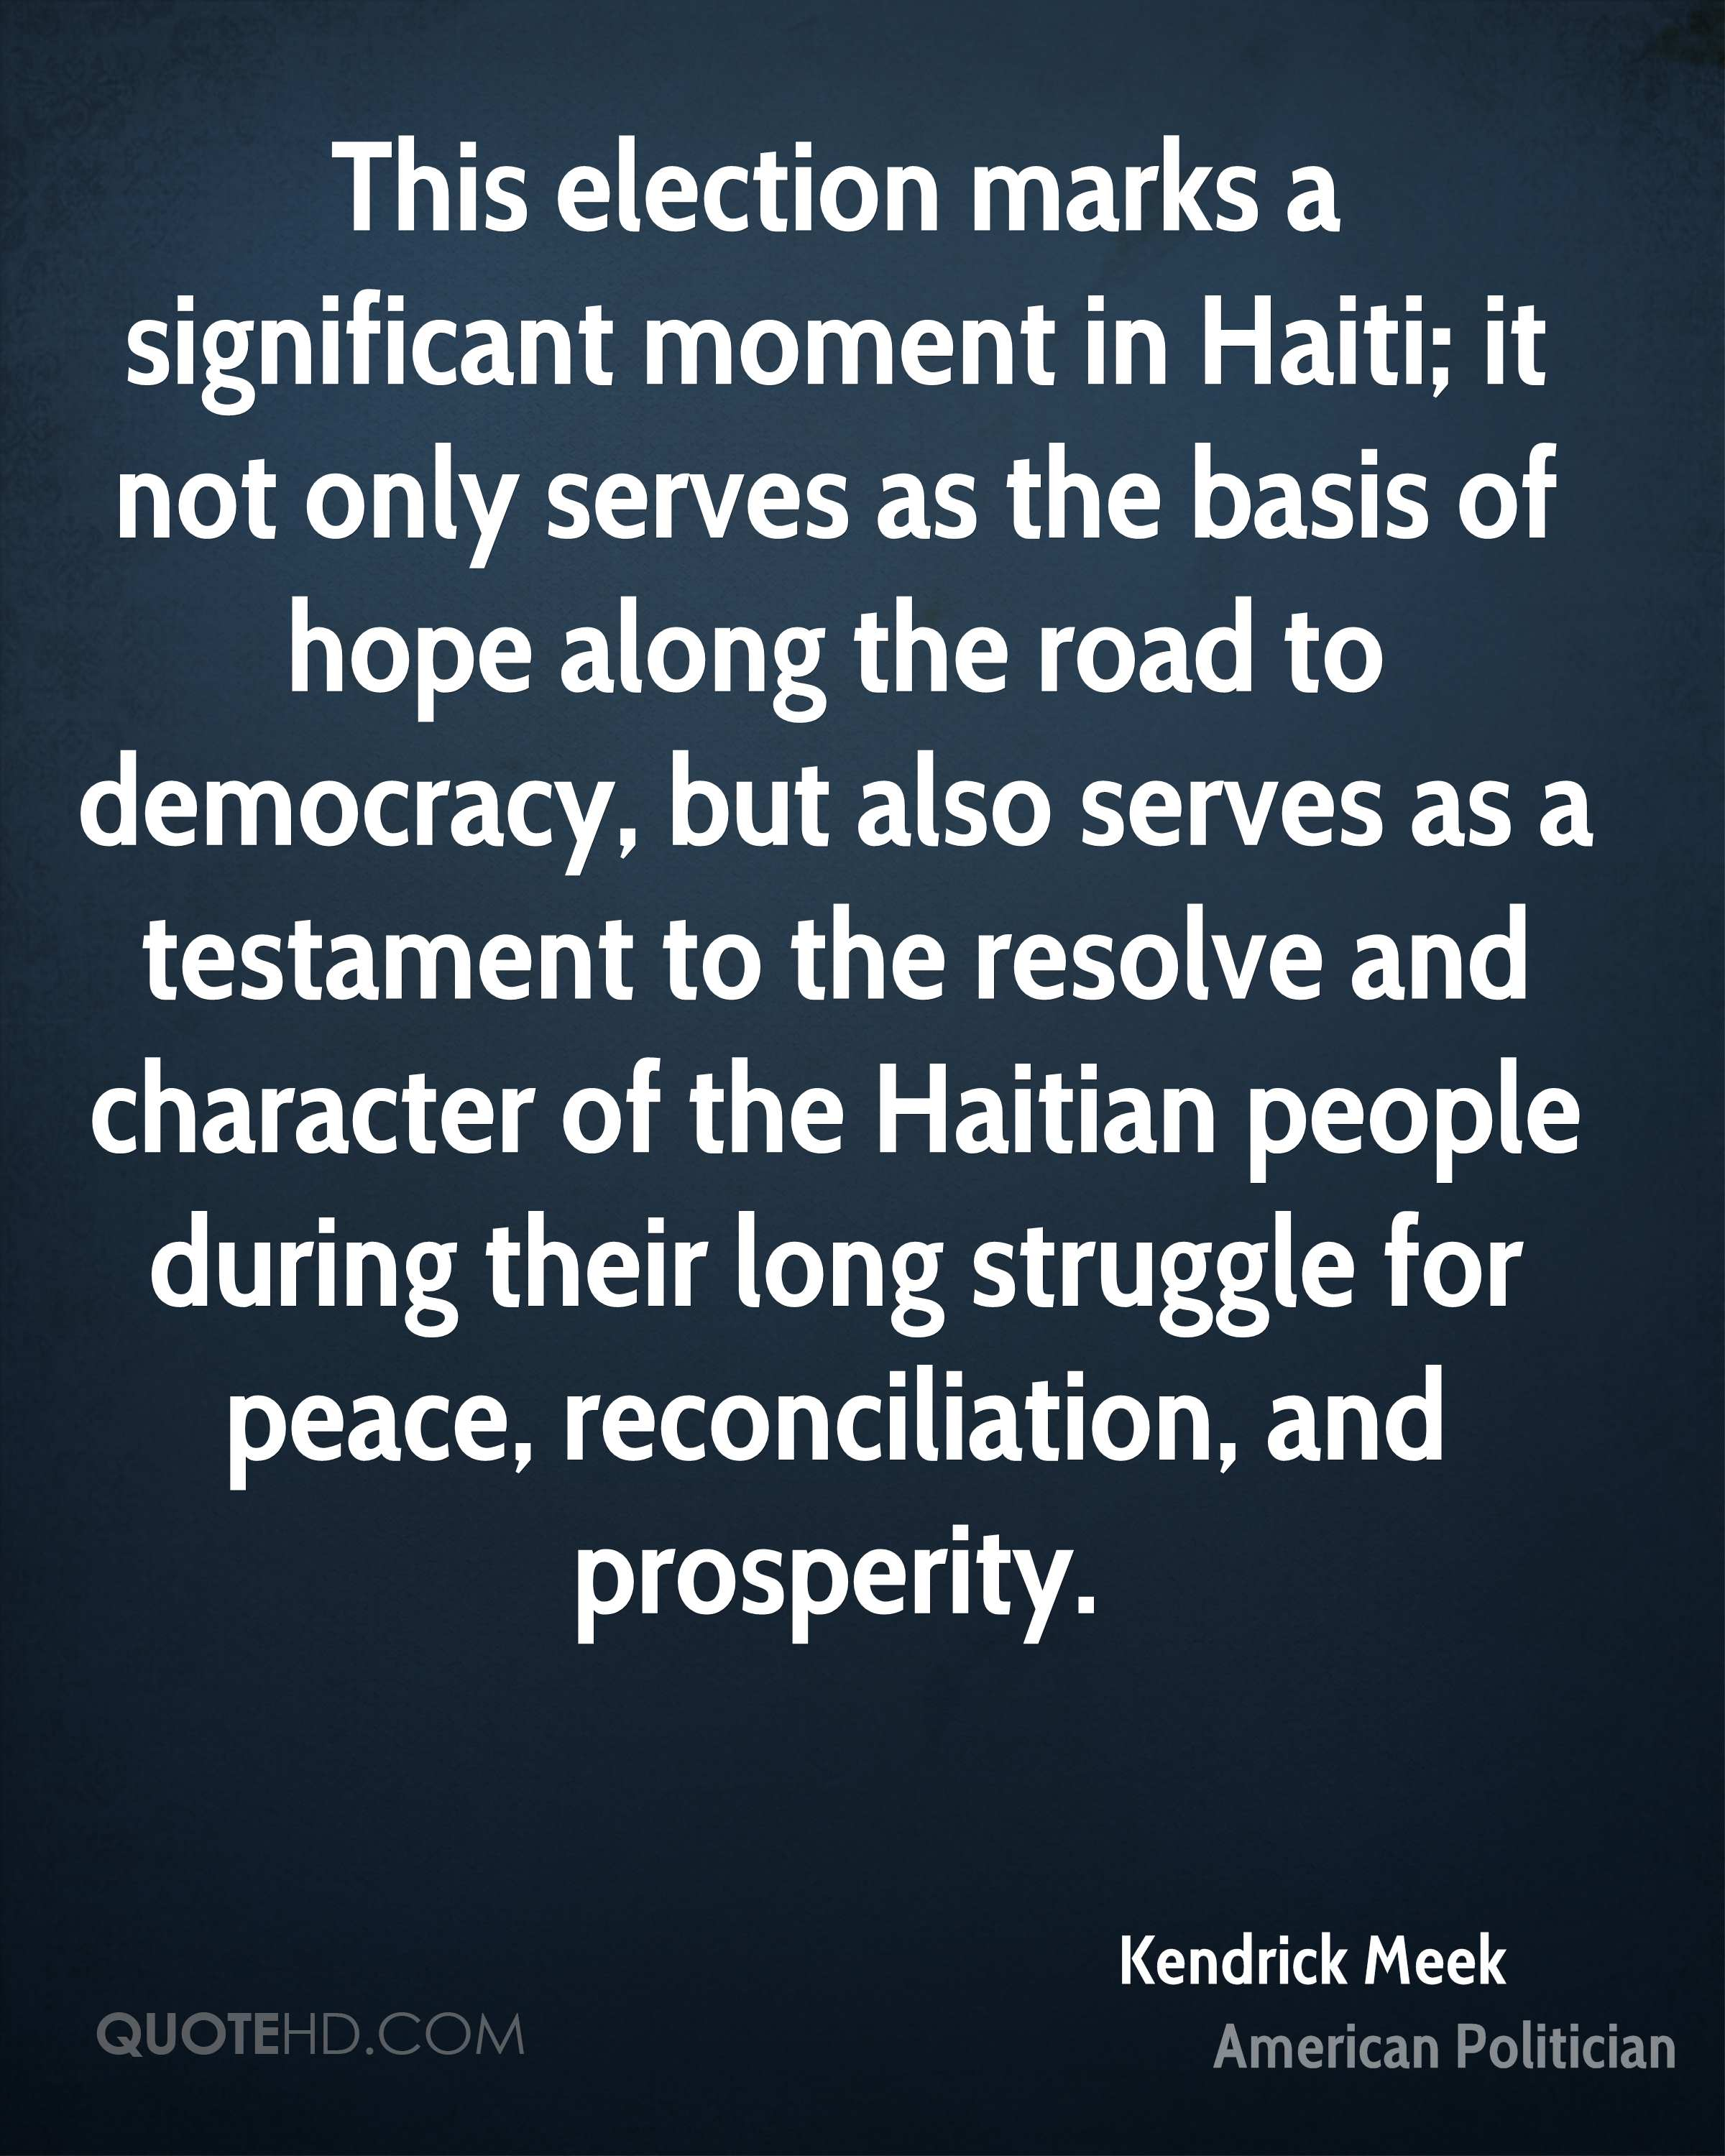 This election marks a significant moment in Haiti; it not only serves as the basis of hope along the road to democracy, but also serves as a testament to the resolve and character of the Haitian people during their long struggle for peace, reconciliation, and prosperity.